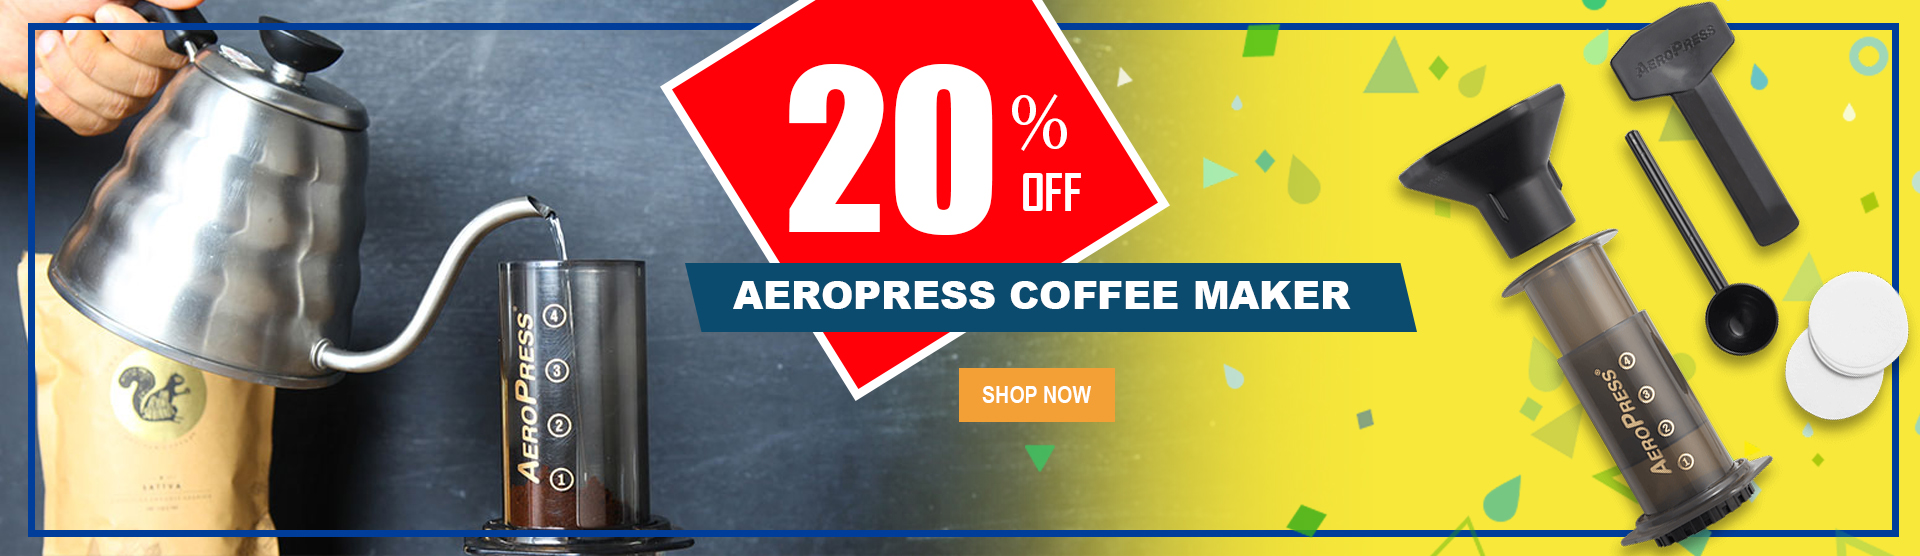 Weelago - Aeropress Coffee Maker 20% off Promo